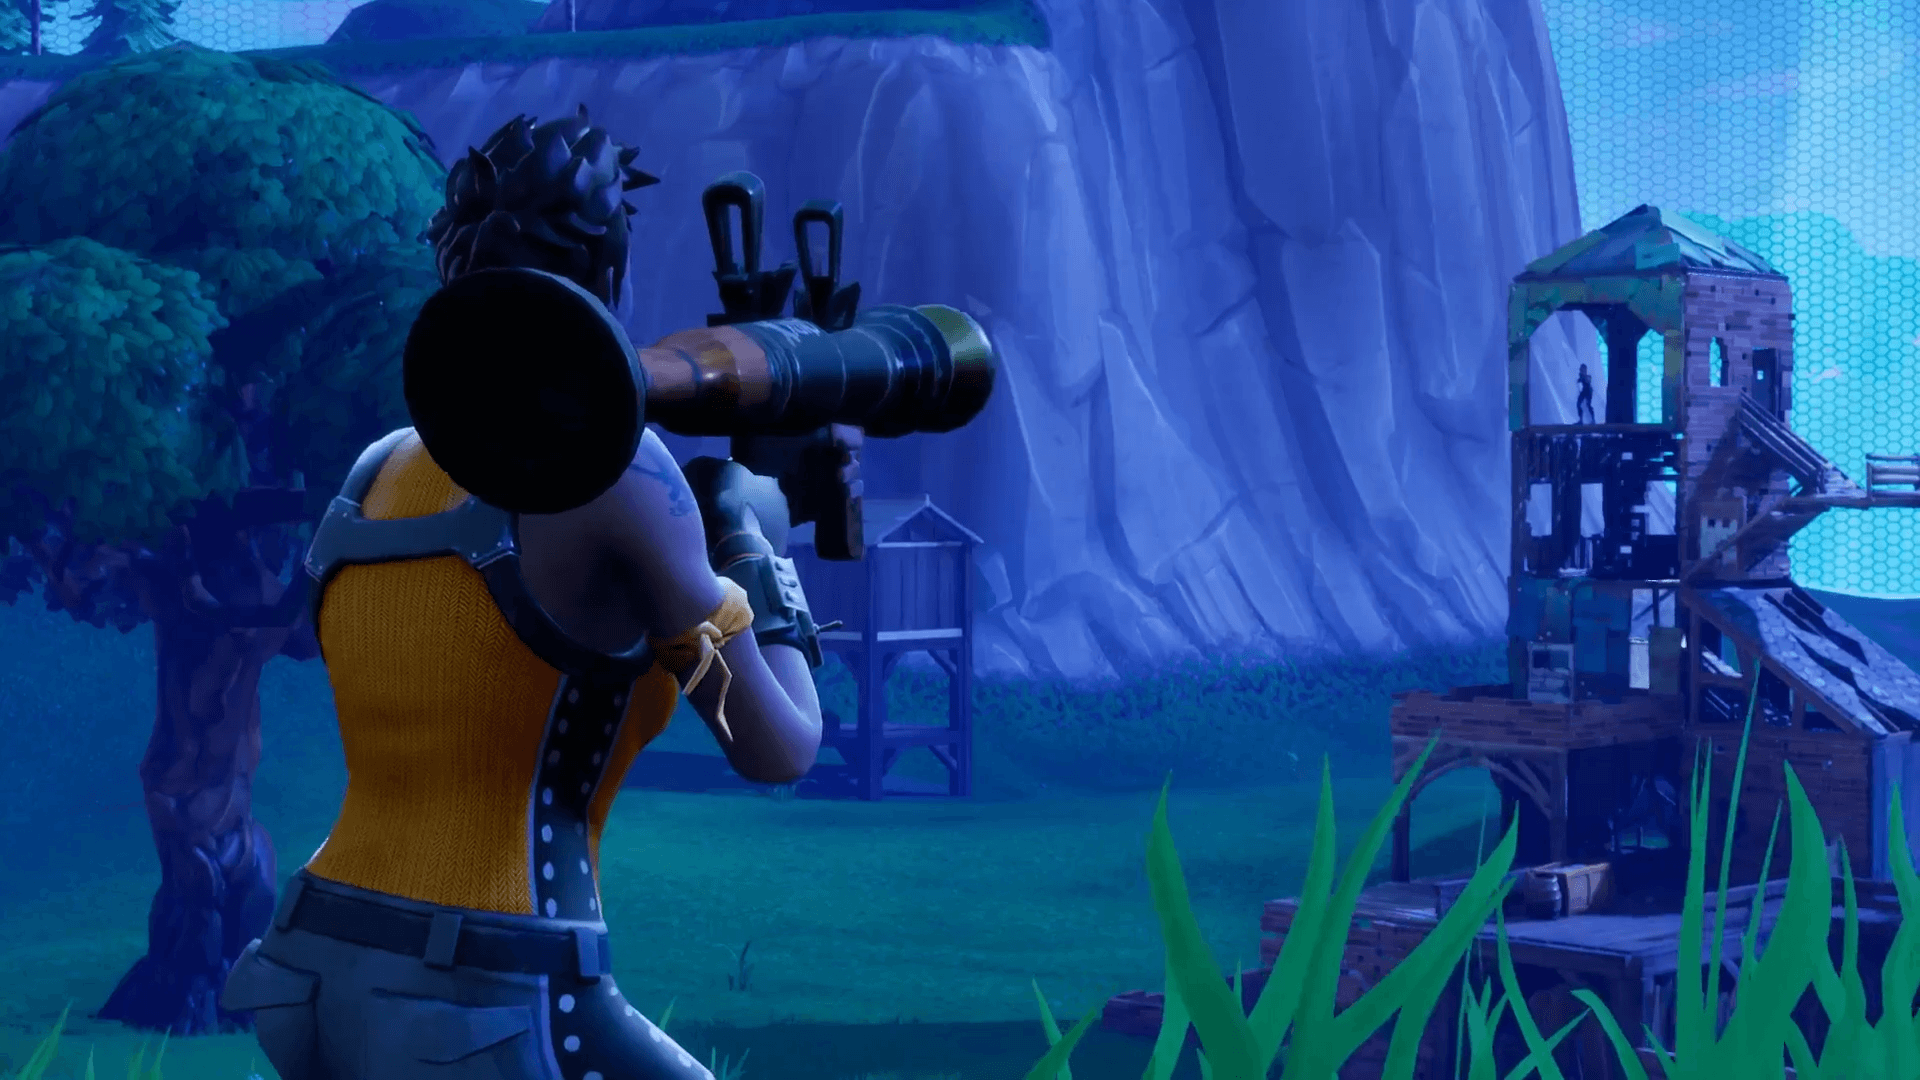 New Fortnite Update Adds Crossbow And More This Week